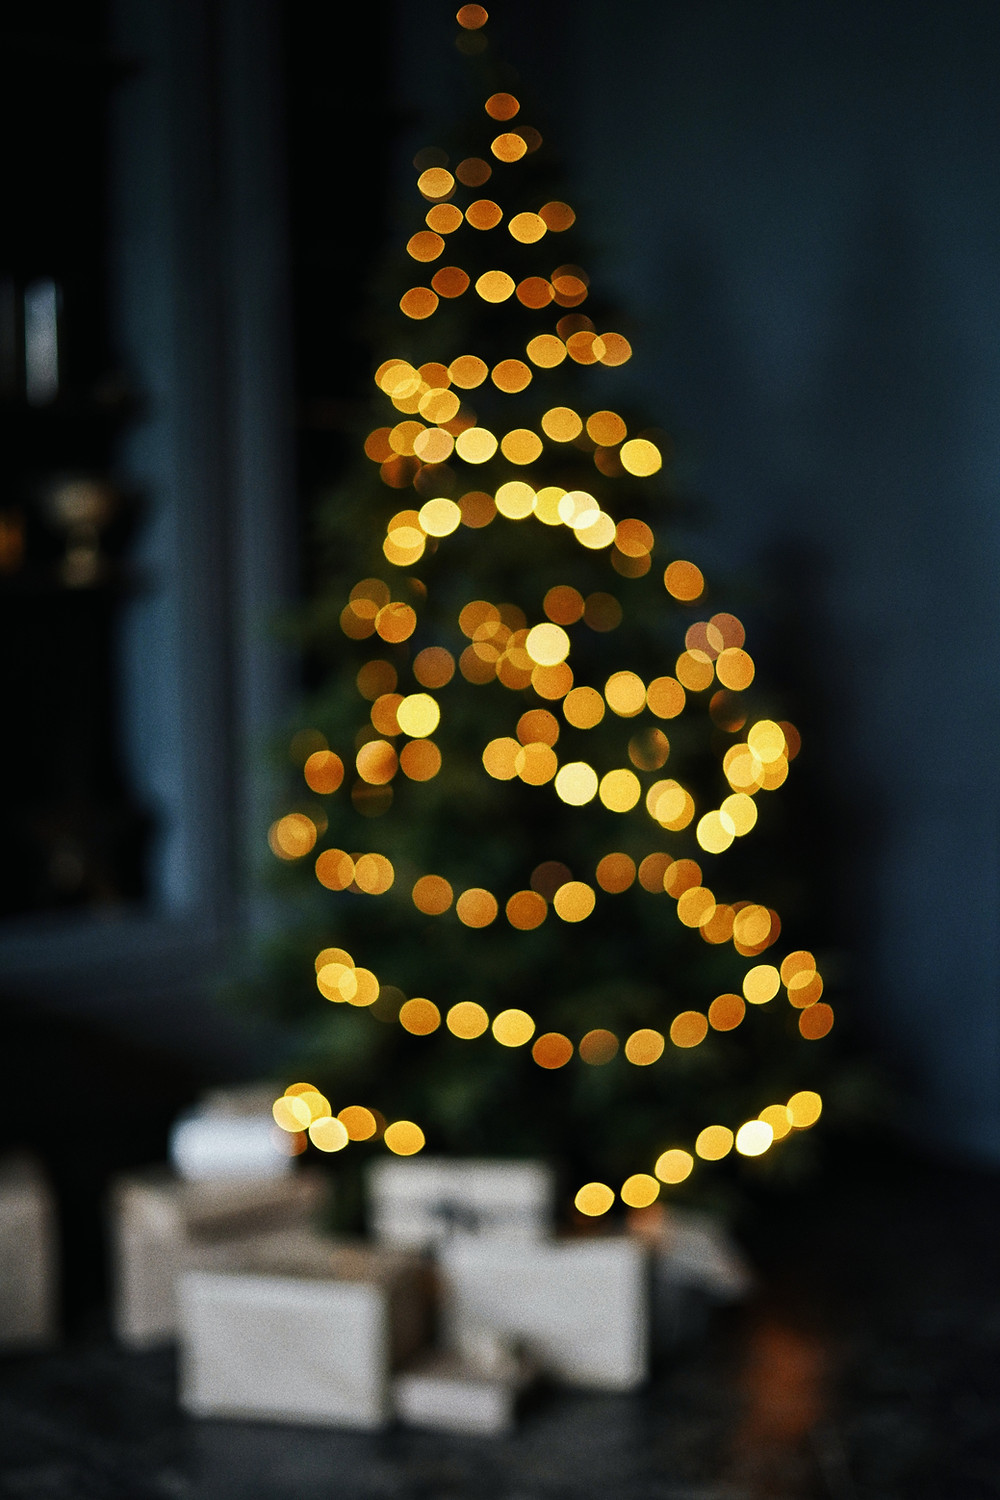 Out of focus Christmas tree with presents underneath it.